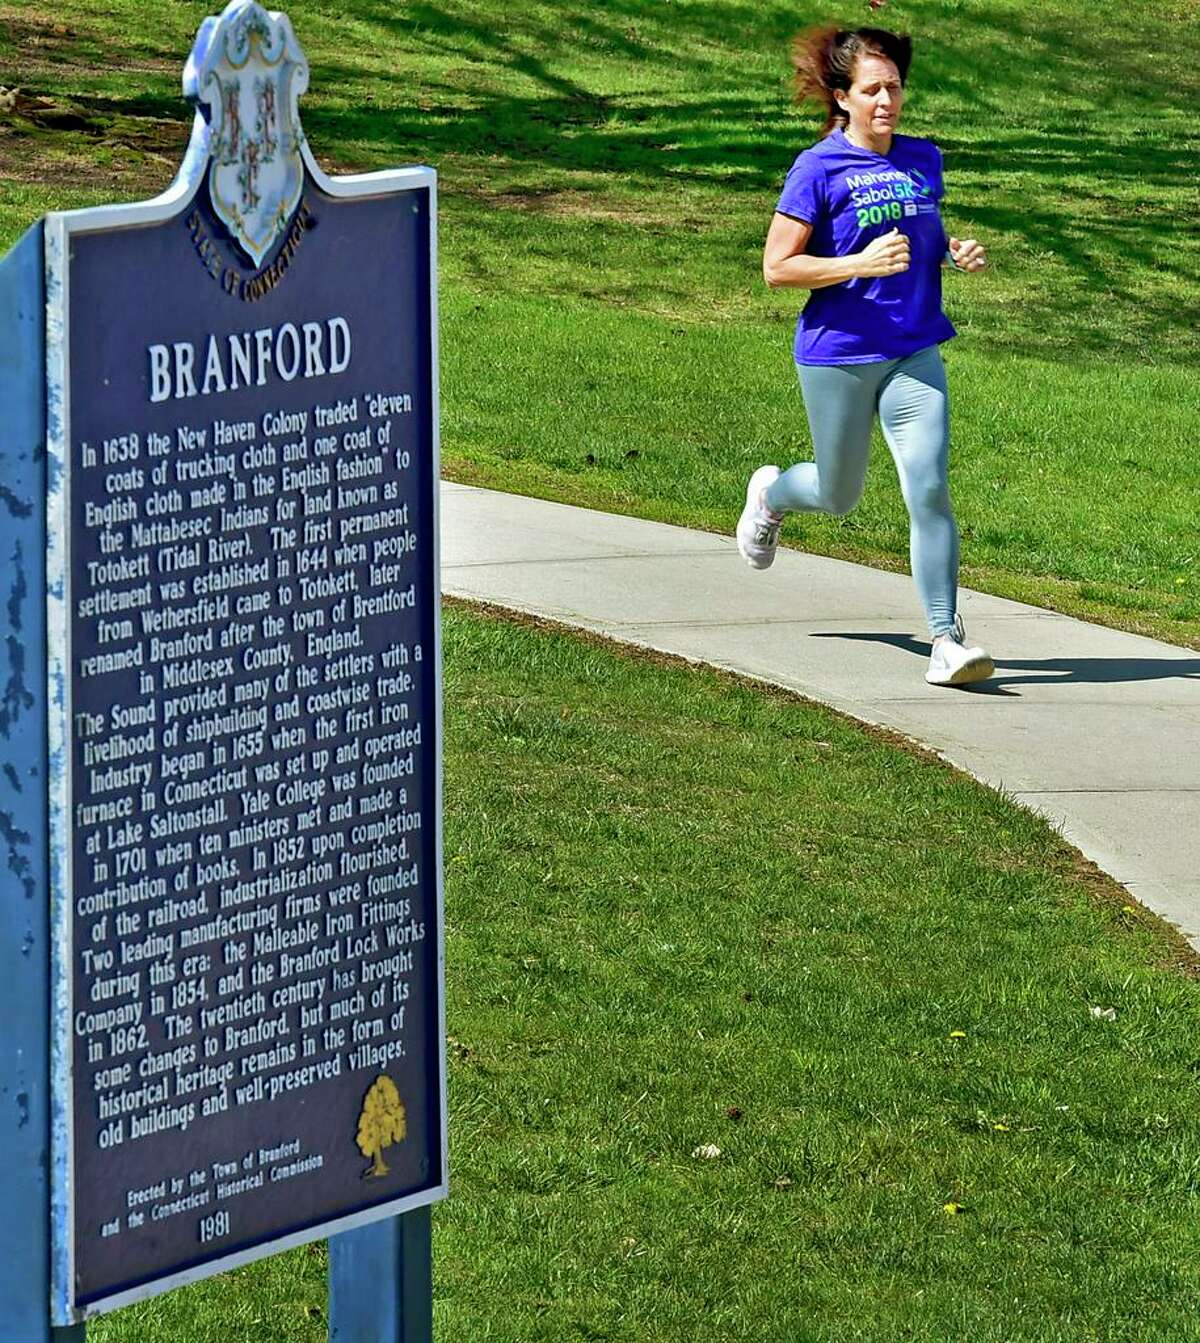 Kellie Boni, of North Branford, running towards Town Hall Drive in Branford, is participating in a nationwide challenge called CityStrides to run or walk every street. She has run every street in North Branford and Northford and has almost competed Branford.